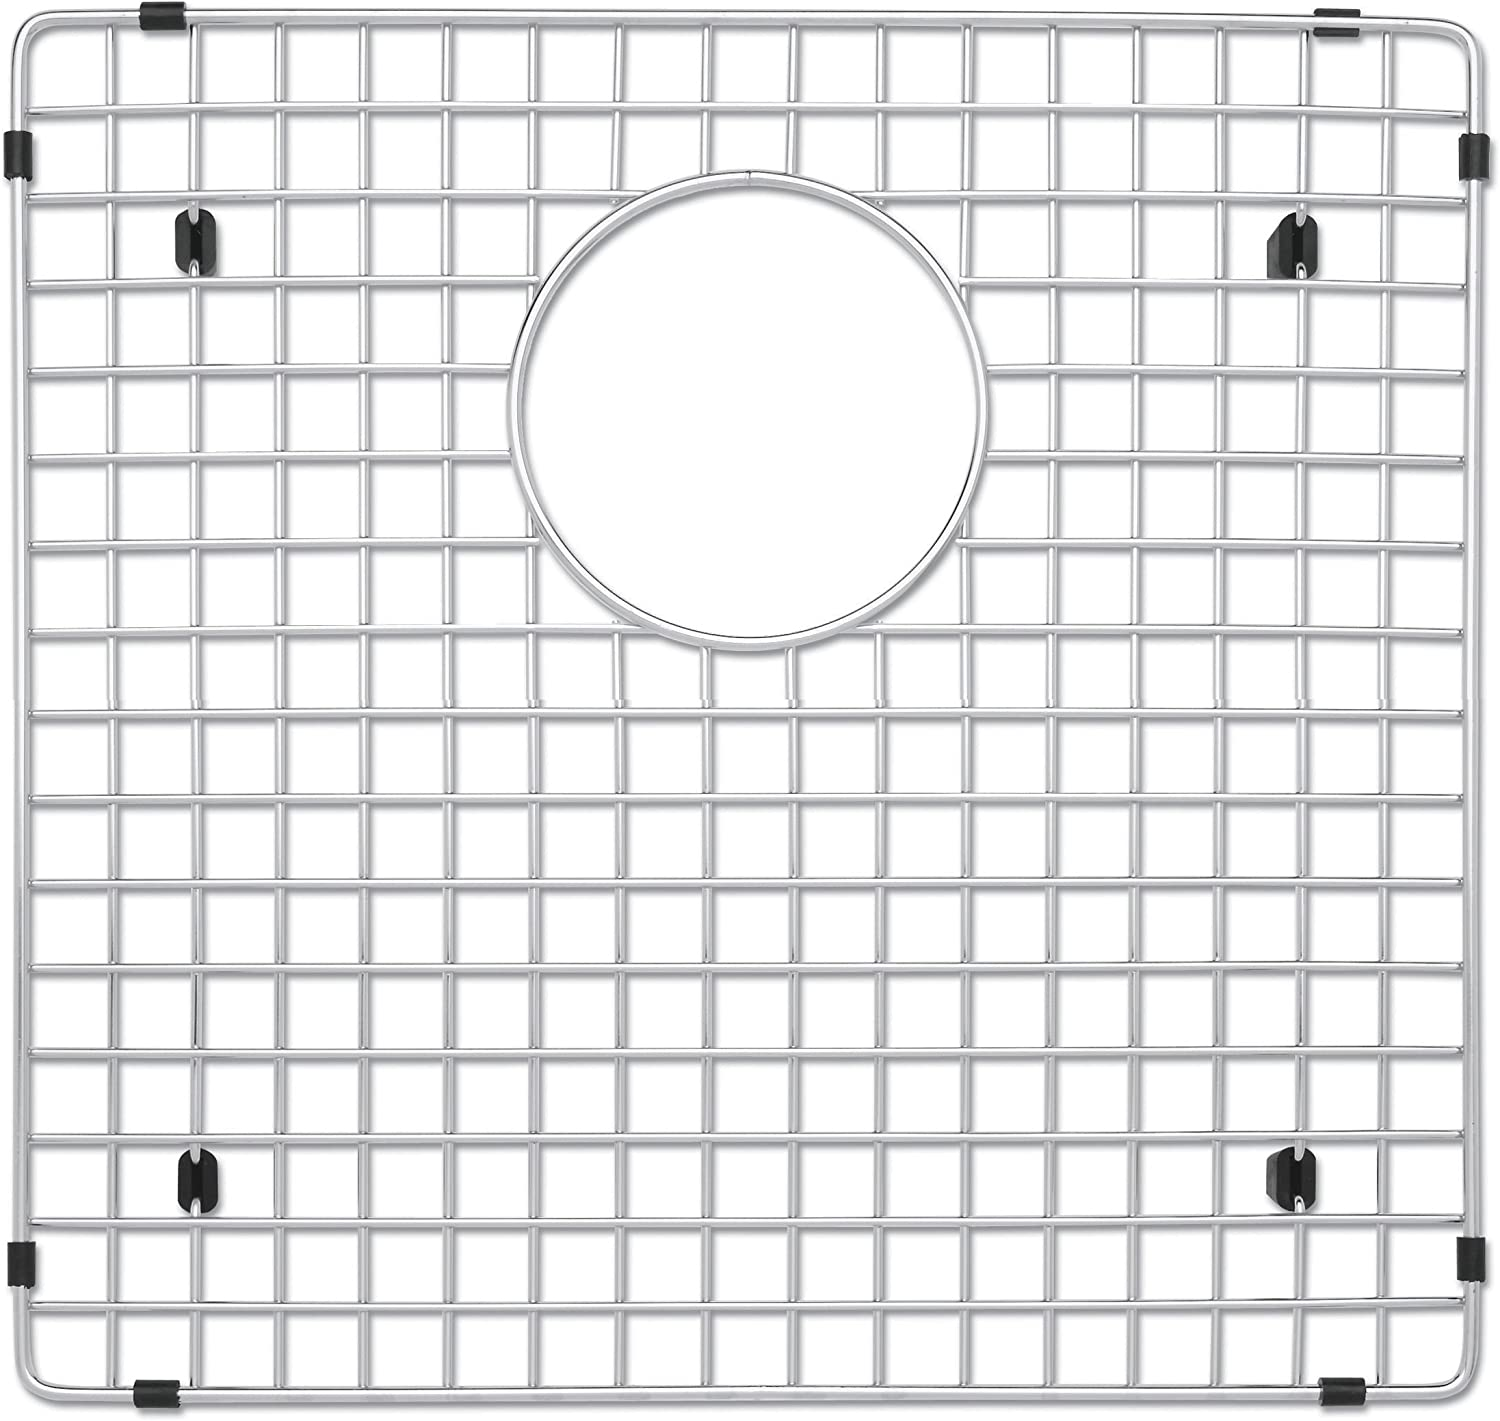 223190 Blanco Stainless Steel Sink Grid (Fits Precision & Precision 10 1-3/4 Bowl left bowl)